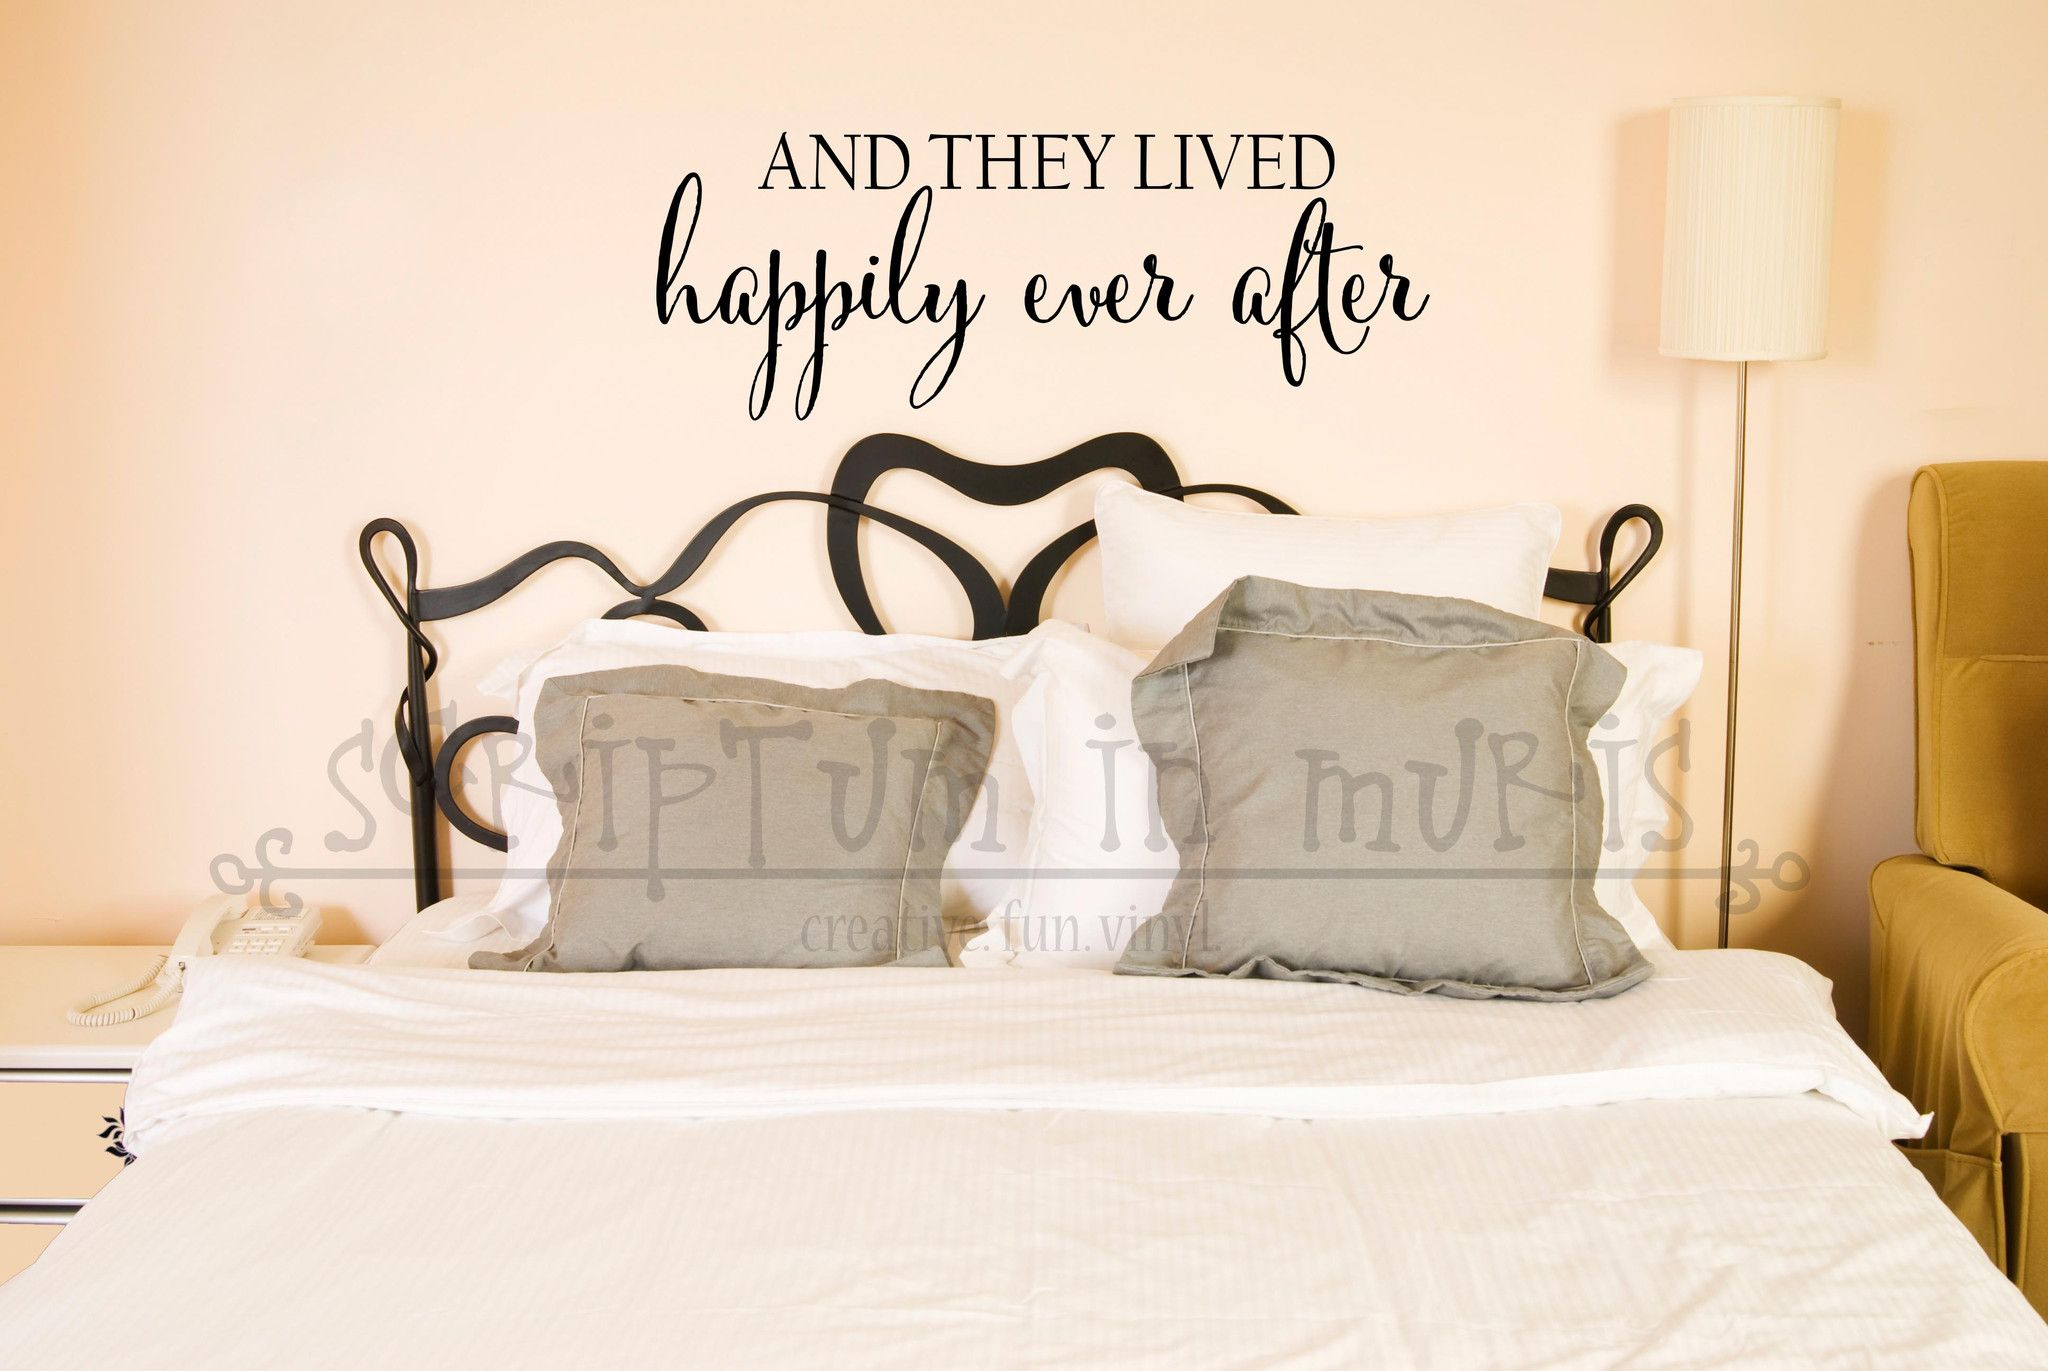 Master bedroom wall decor stickers  And They Lived Happily Ever After Bedroom or Wedding Vinyl Decal